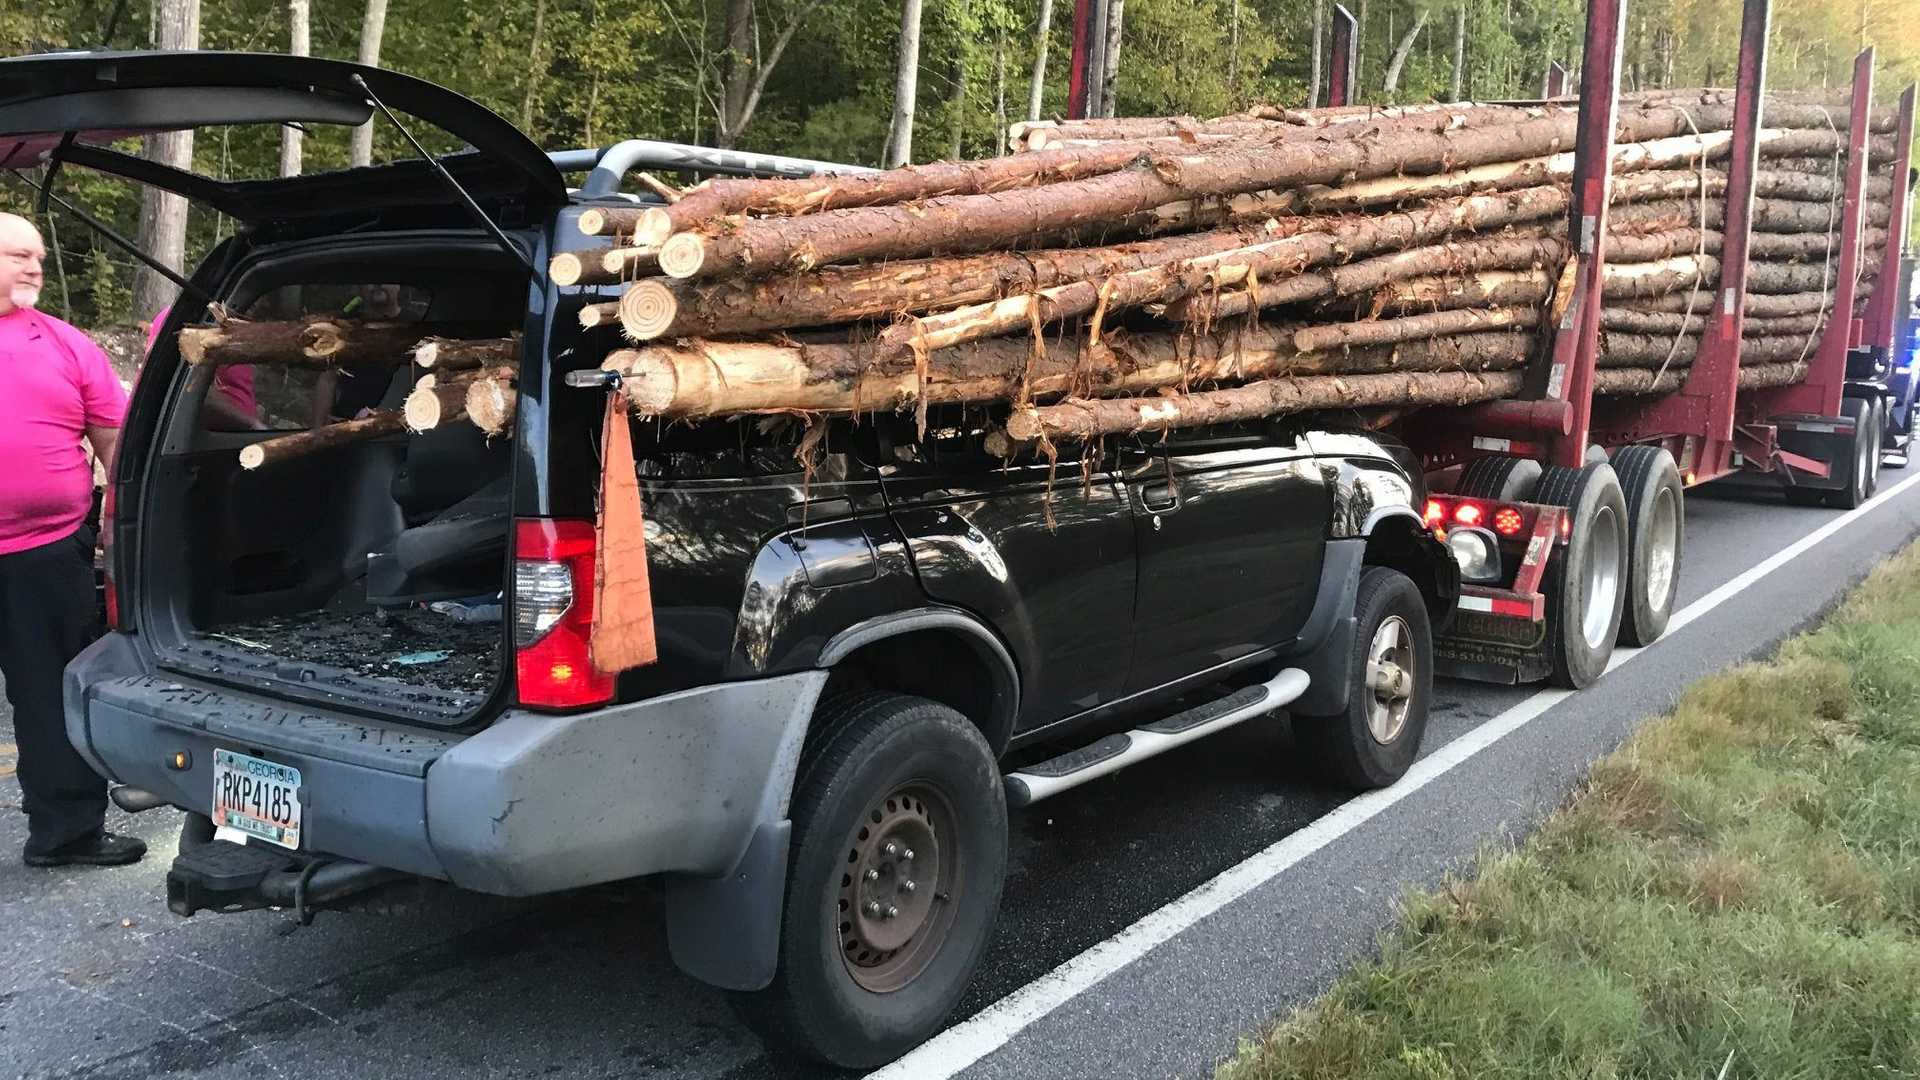 Driver Somehow Survives After Nissan Xterra Gets Impaled By Logs